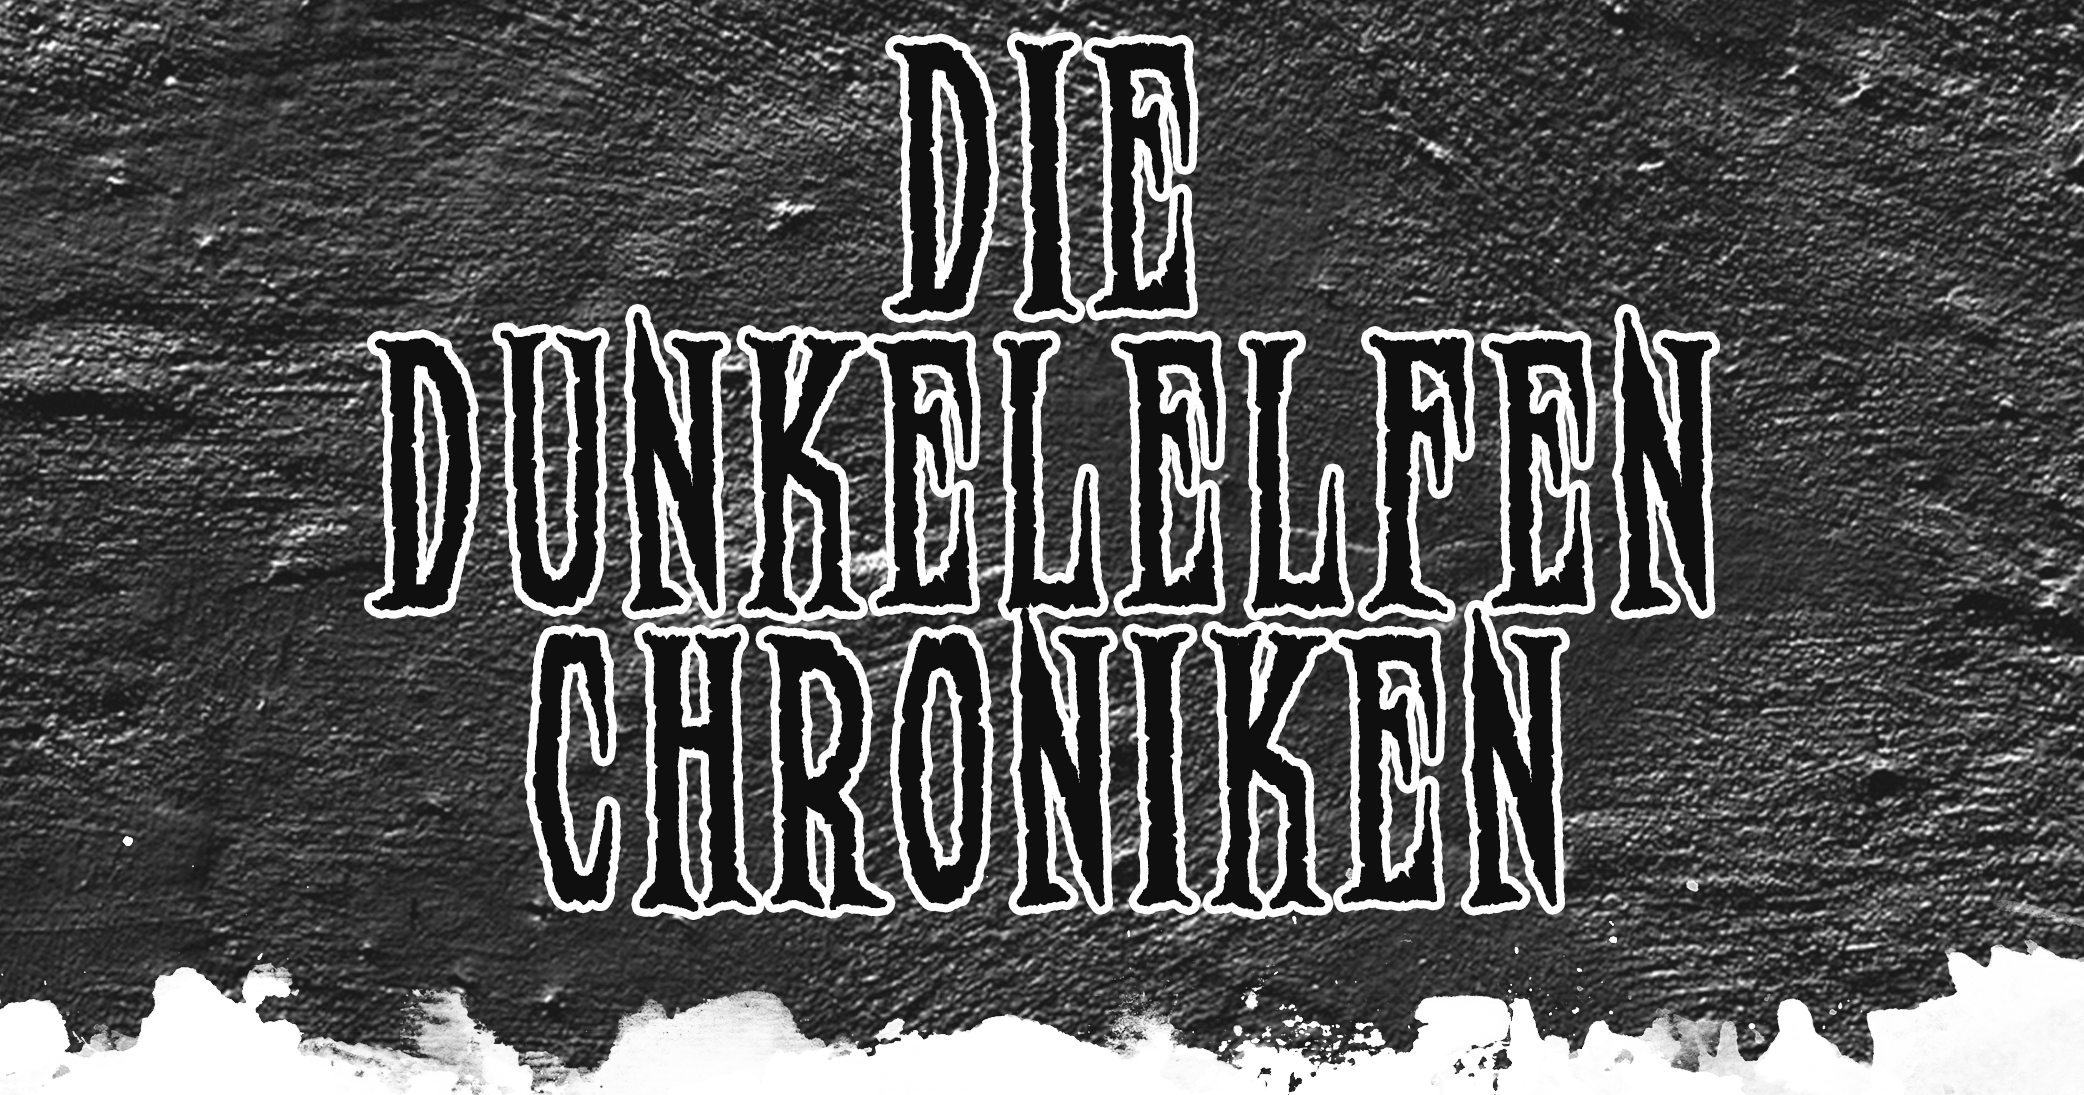 Die Dunkelelfen Chroniken  Vol 1: Nobles, Warriors, Sorcerers, Lurkers